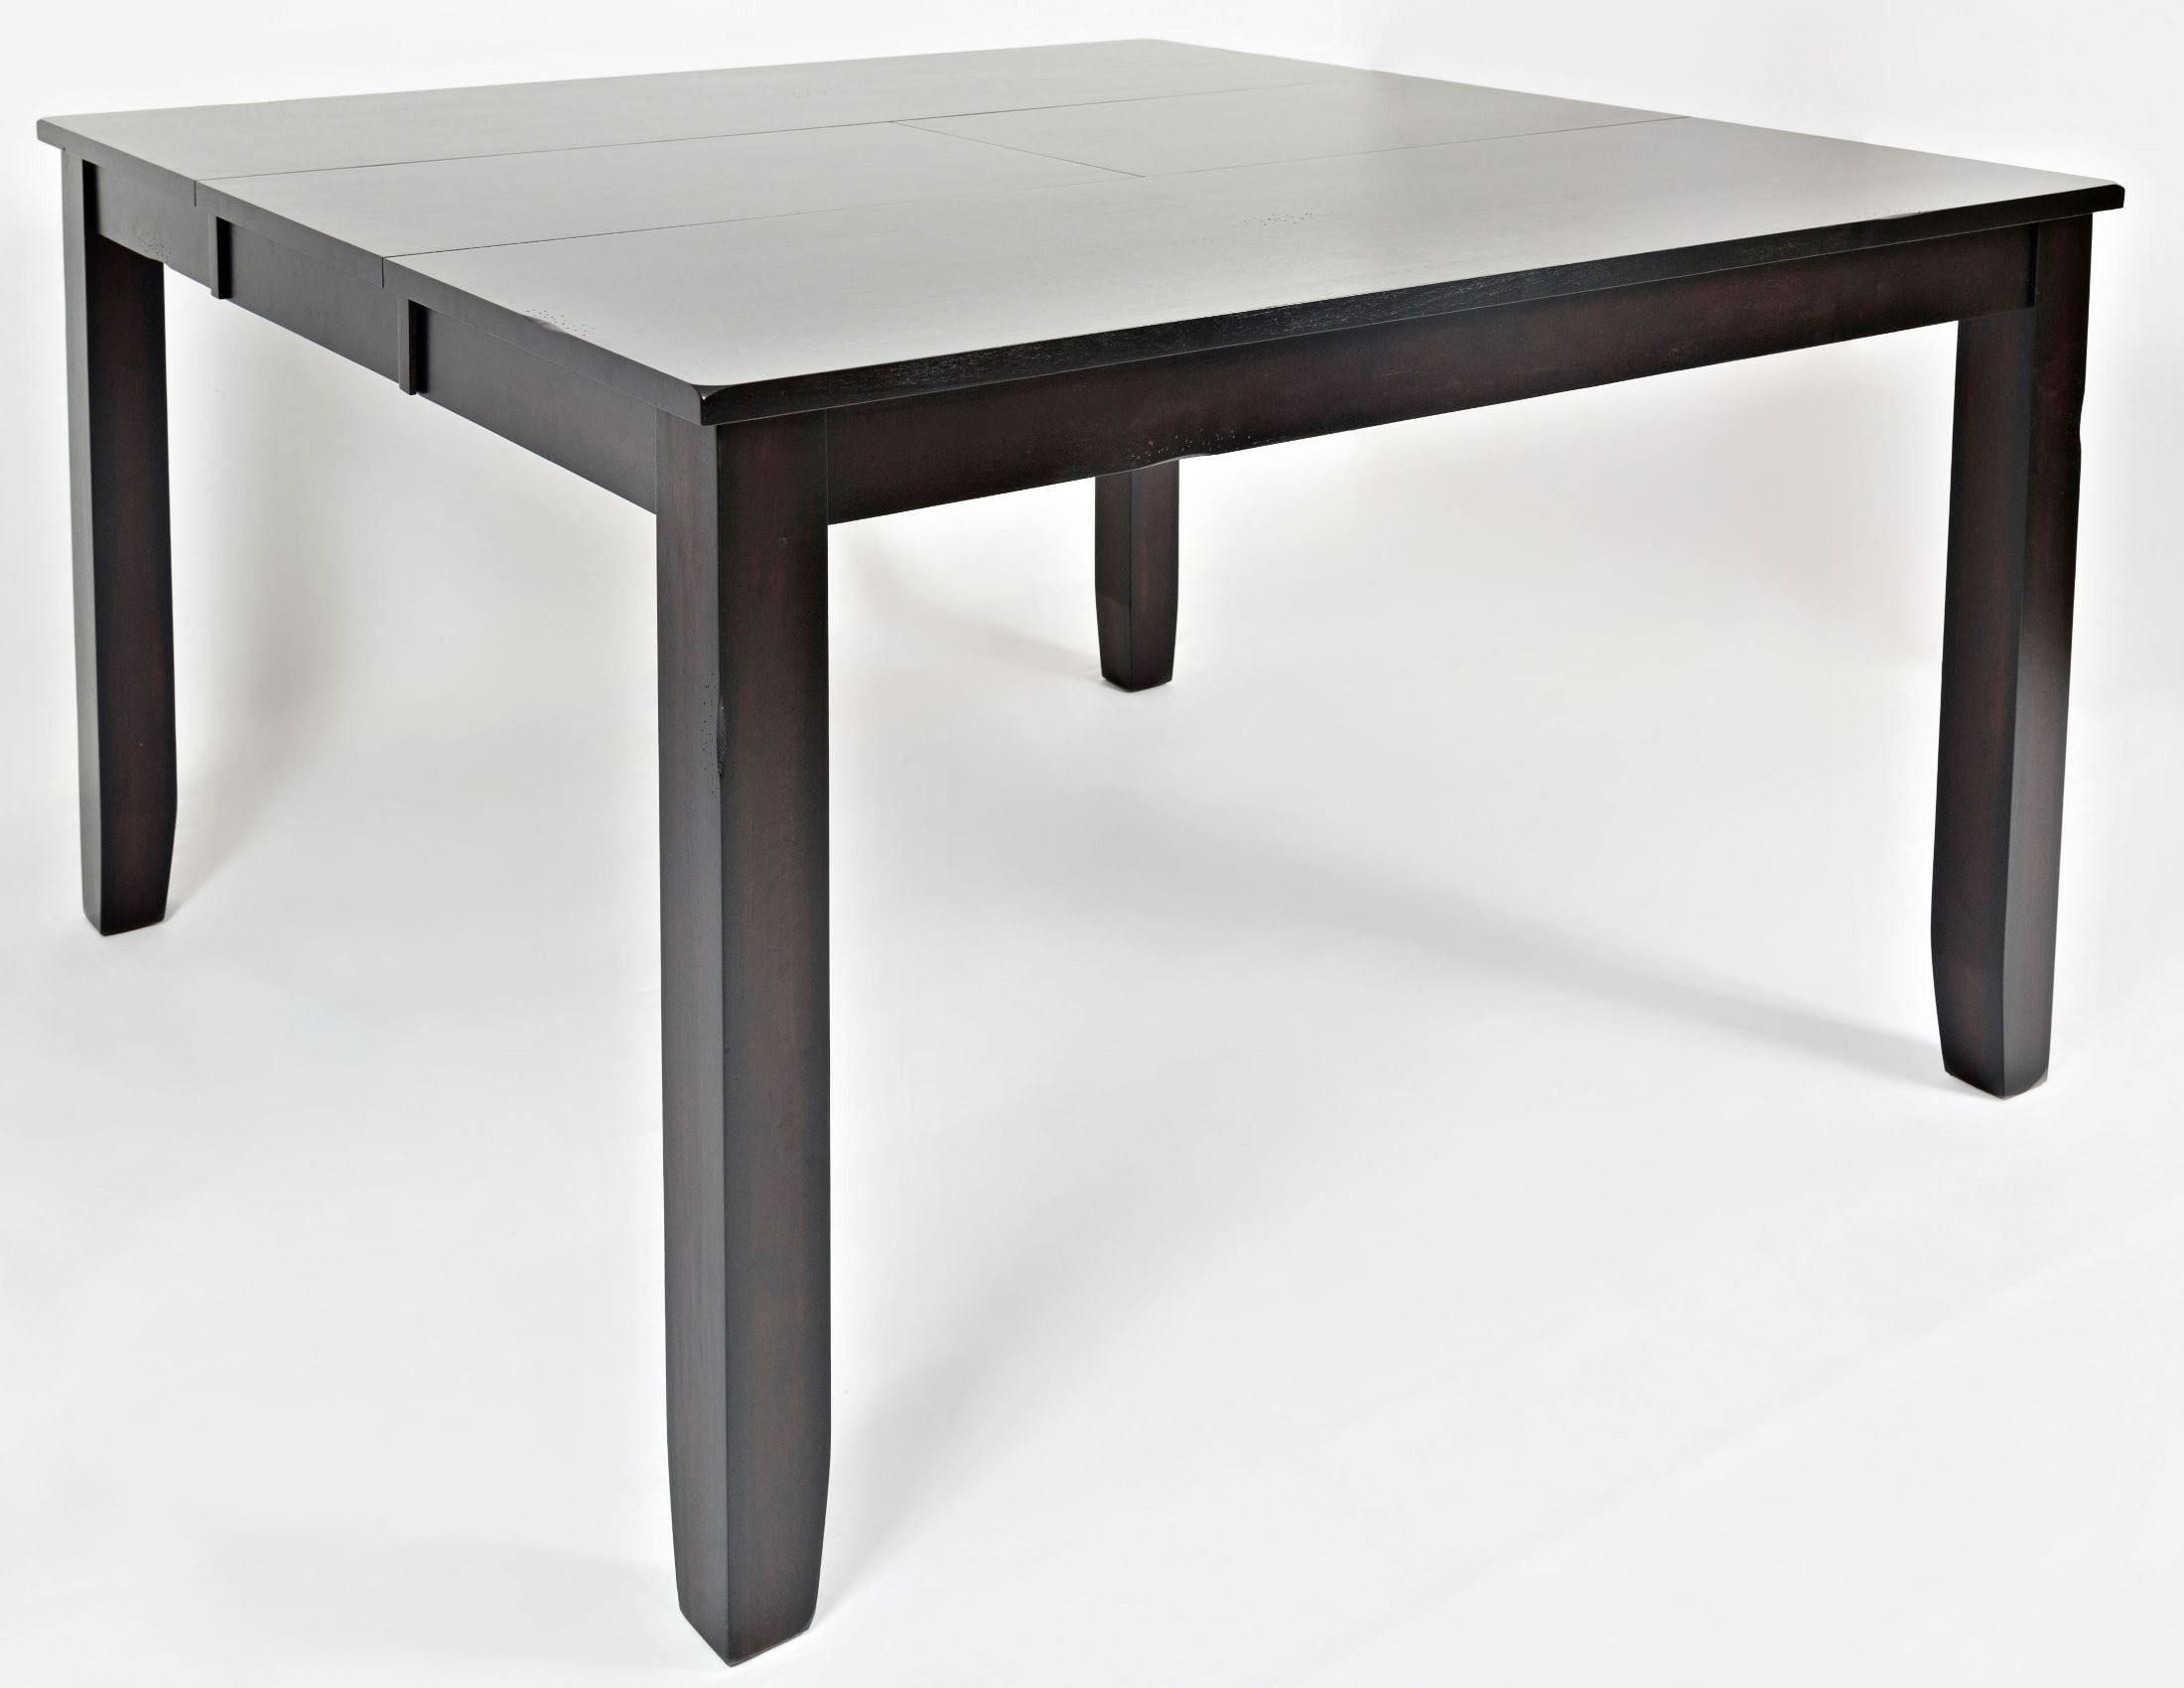 Dark rustic prairie extendable counter height dining table for Counter height extendable dining table